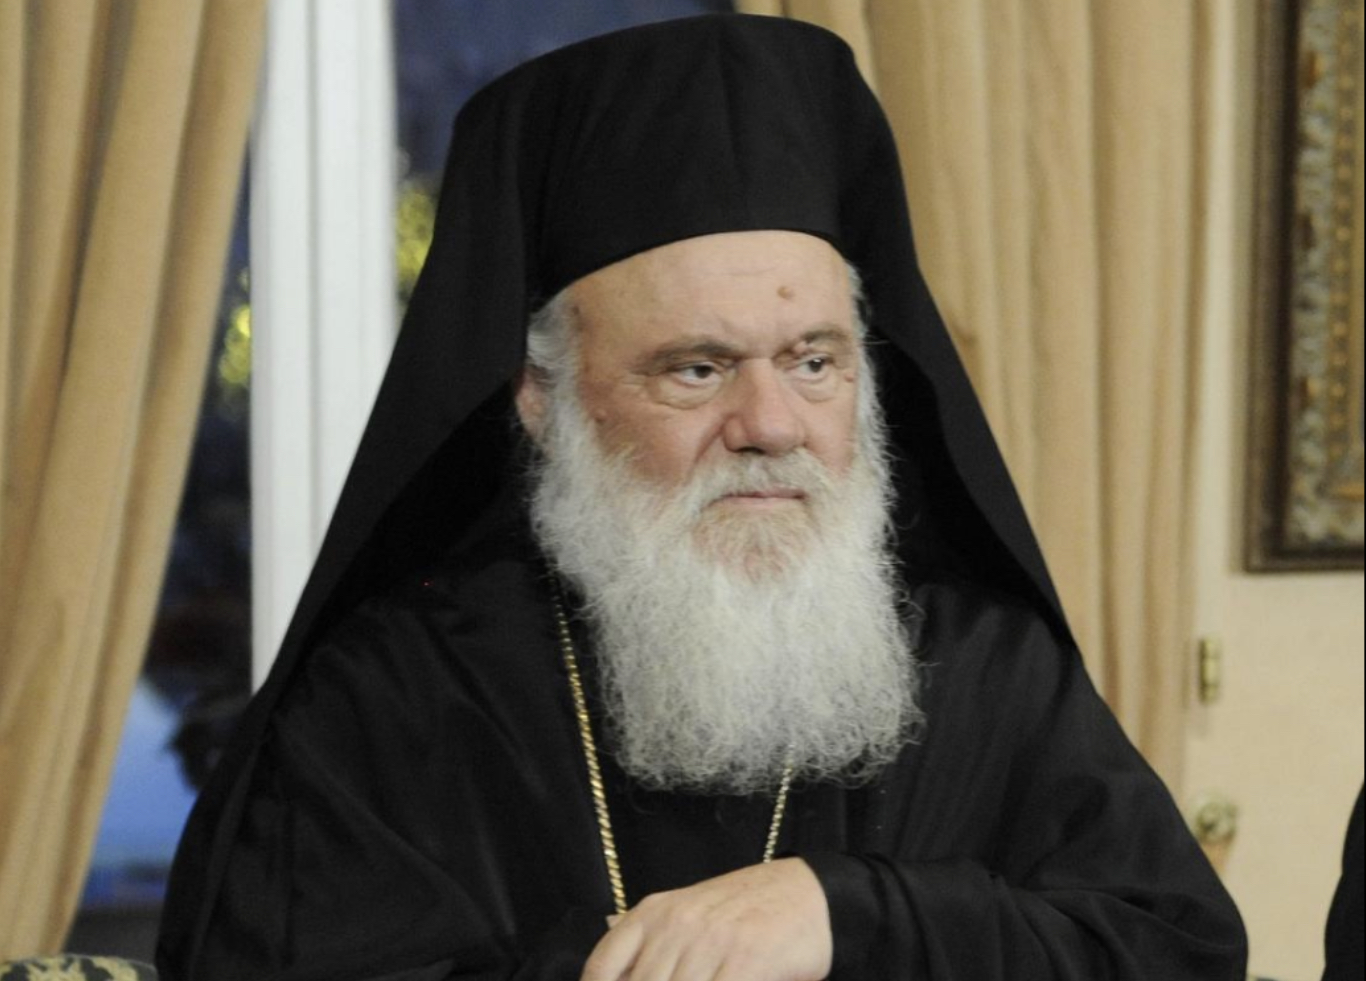 Greece: Archbishop of Athens admitted to the hospital after testing positive for COVID-19